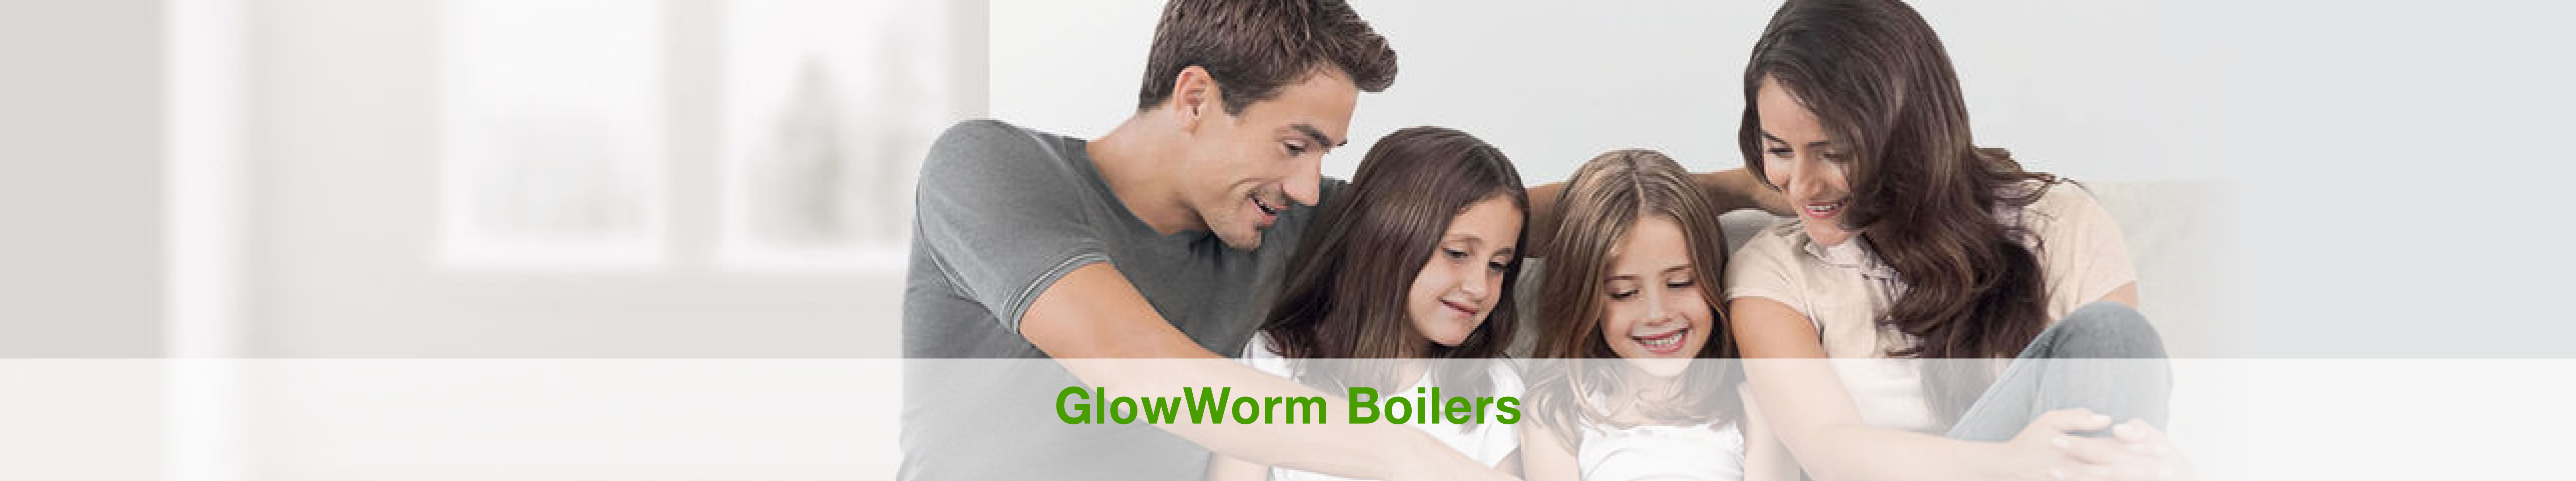 Glow Worm Boilers Weybridge